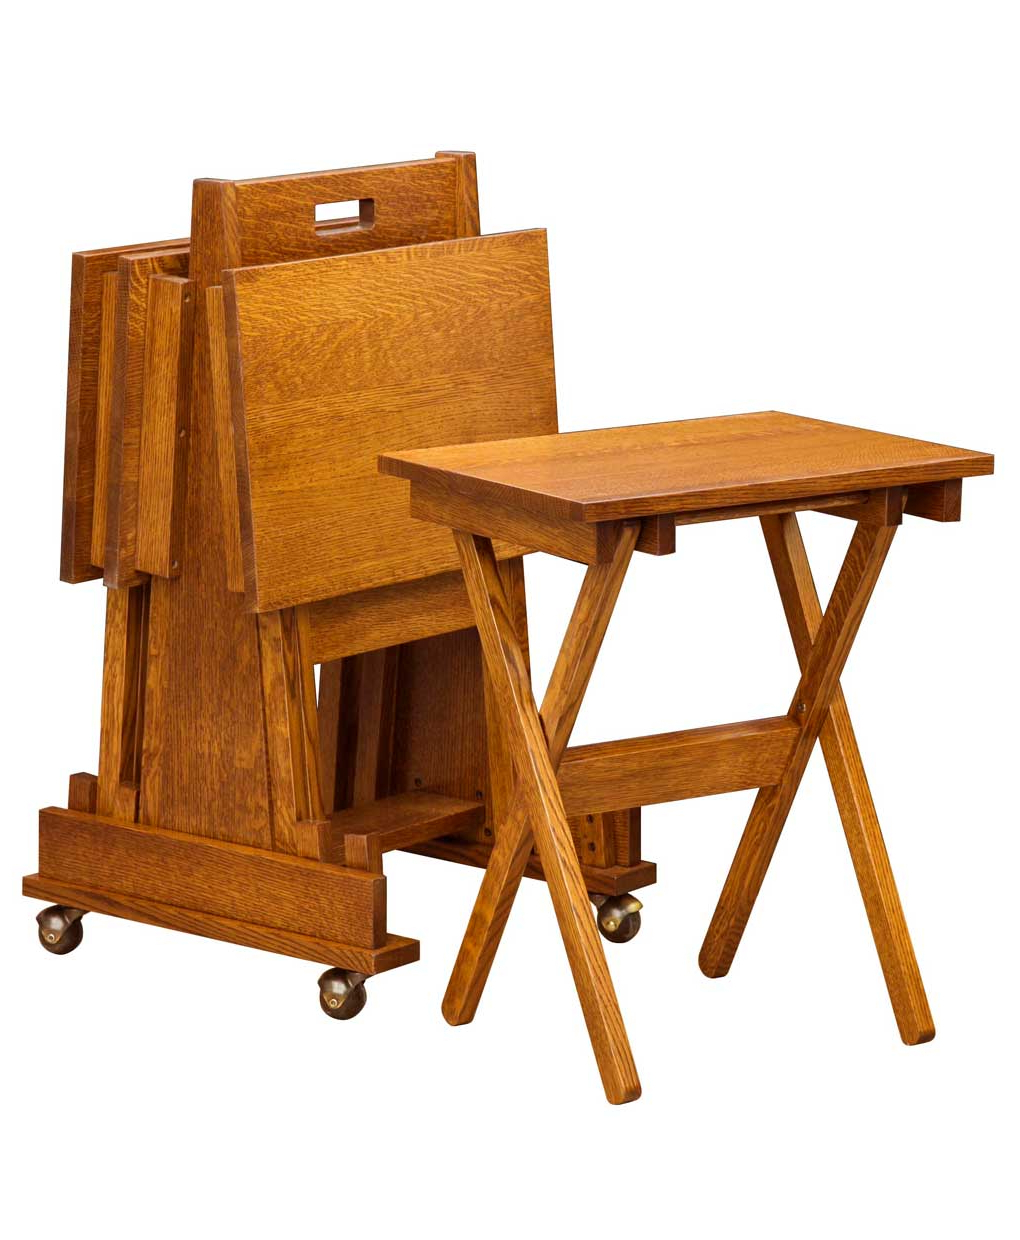 2018 Folding Tv Trays Pertaining To Mission Folding Tv Tray Set – Amish Direct Furniture (View 1 of 20)